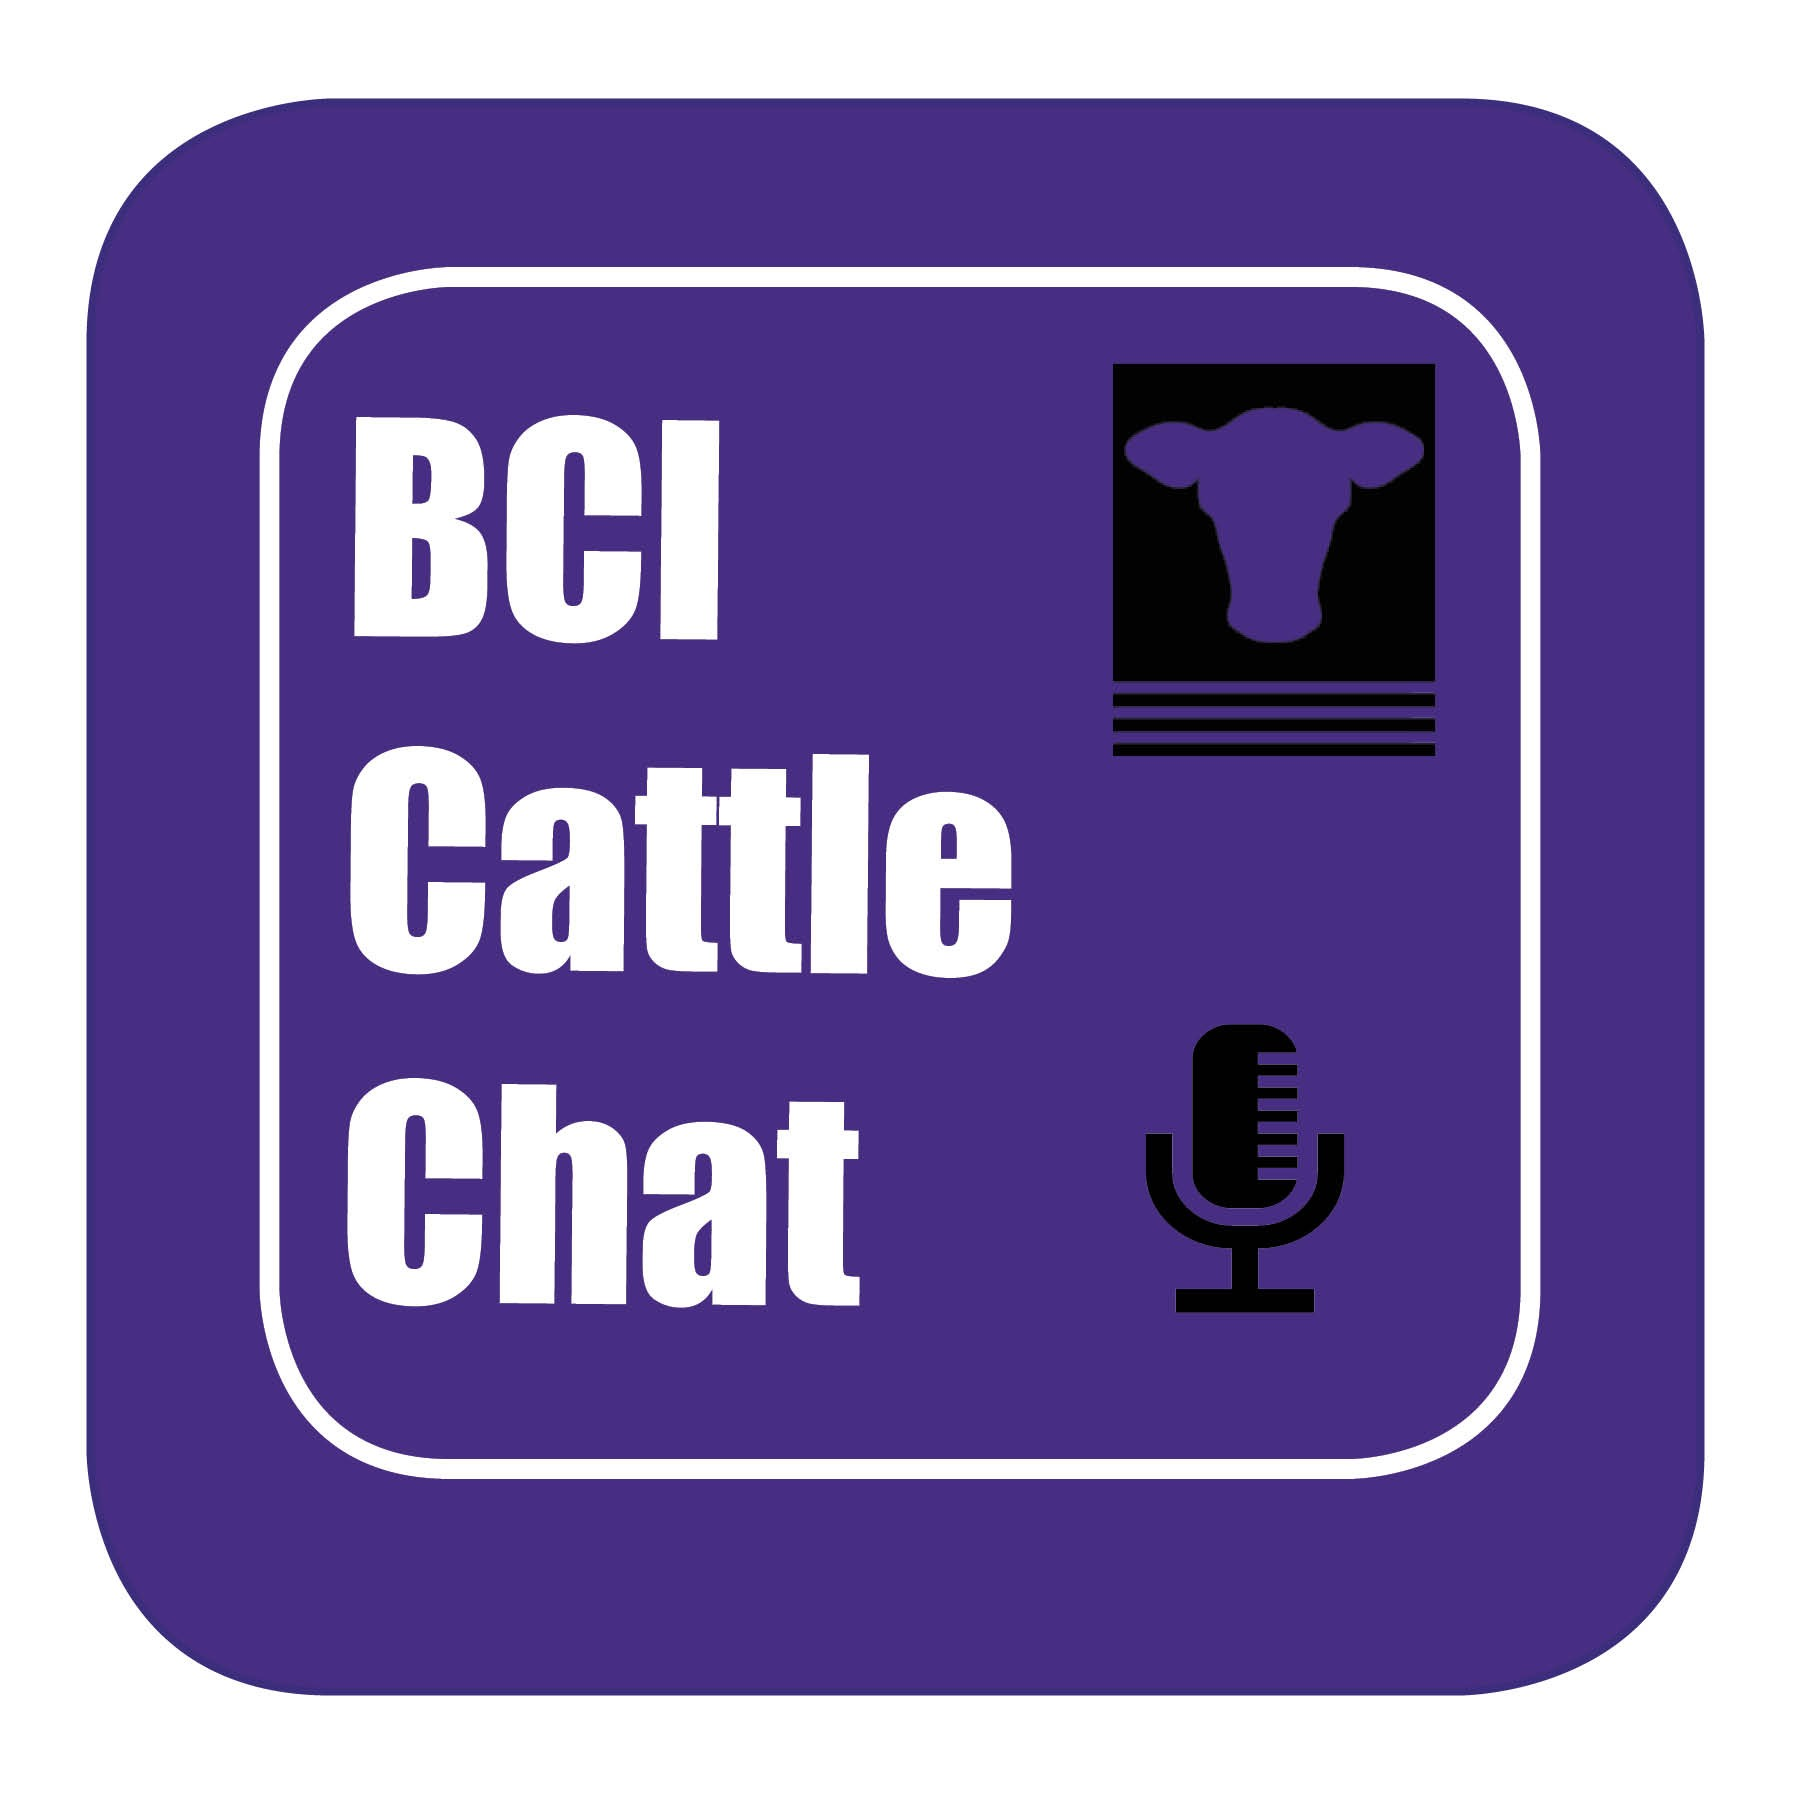 BCI Cattle Chat - Episode 40